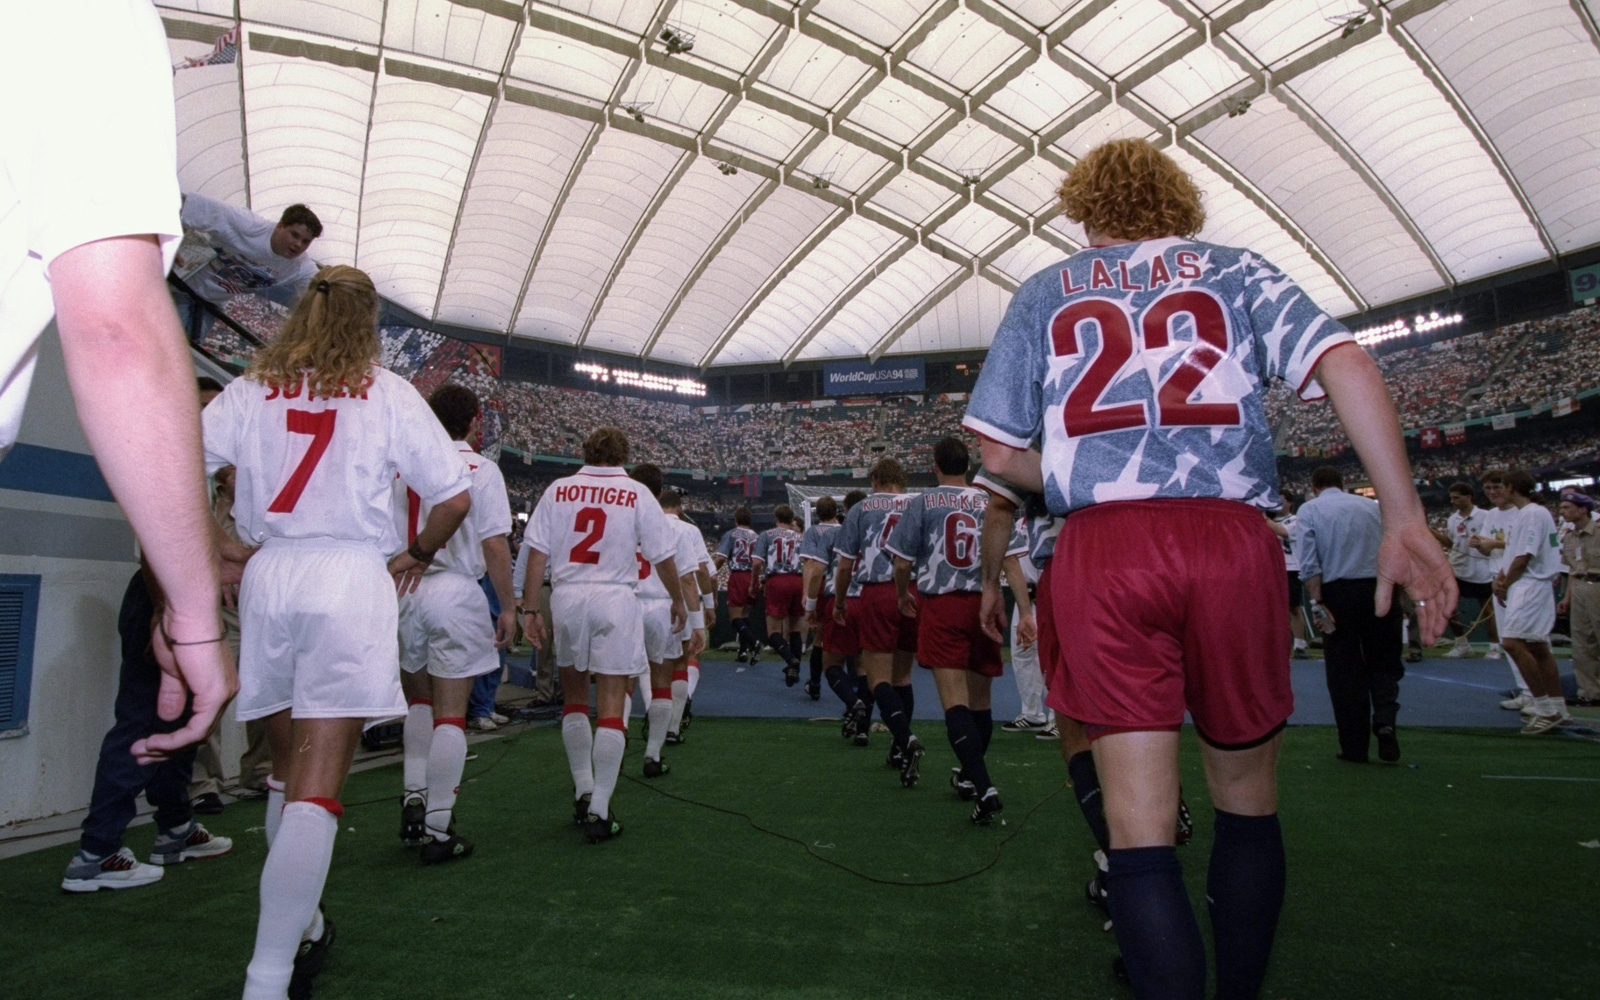 Alexi Lalas walks out of the tunnel and onto the Silverdome field